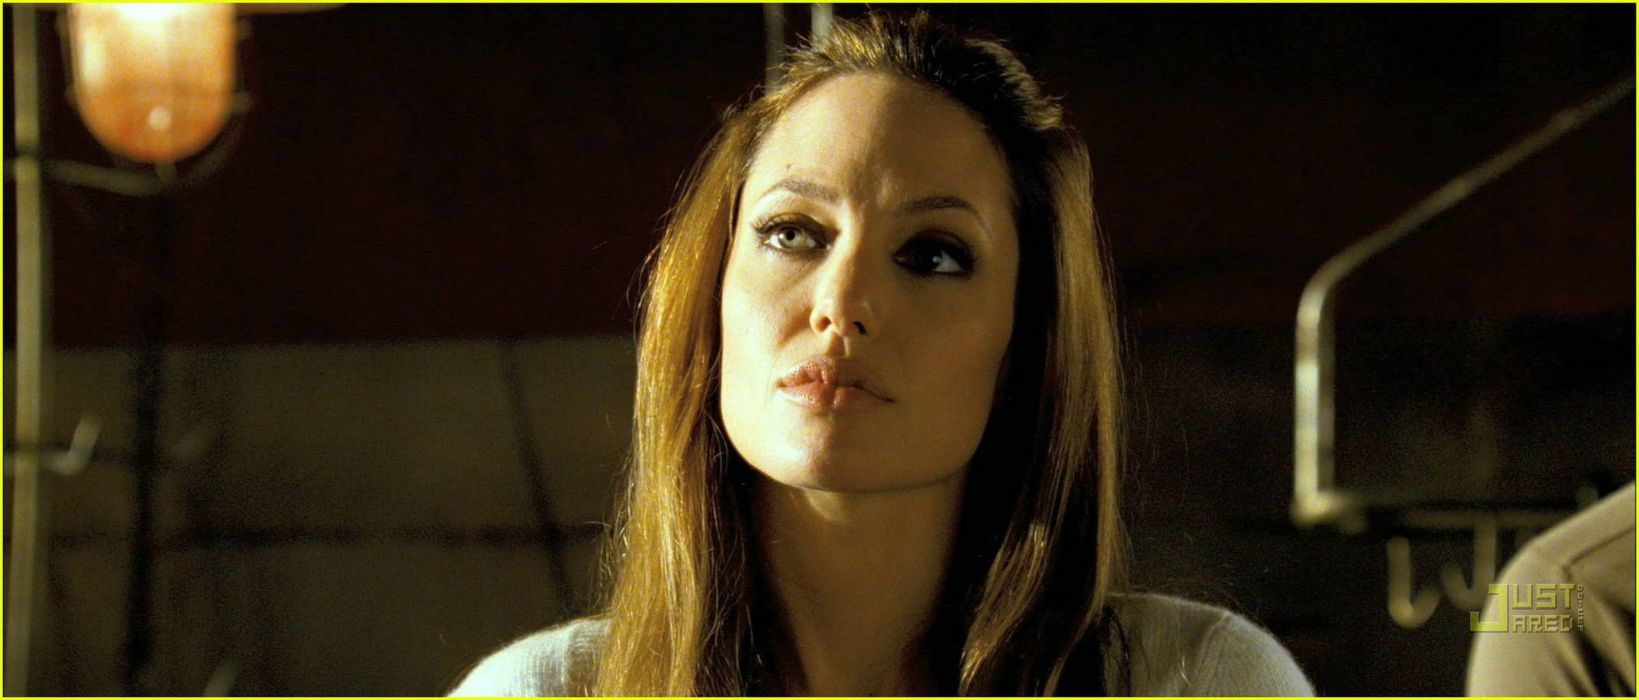 WANTED action crime fantasy sci-fi jolie (17) wallpaper